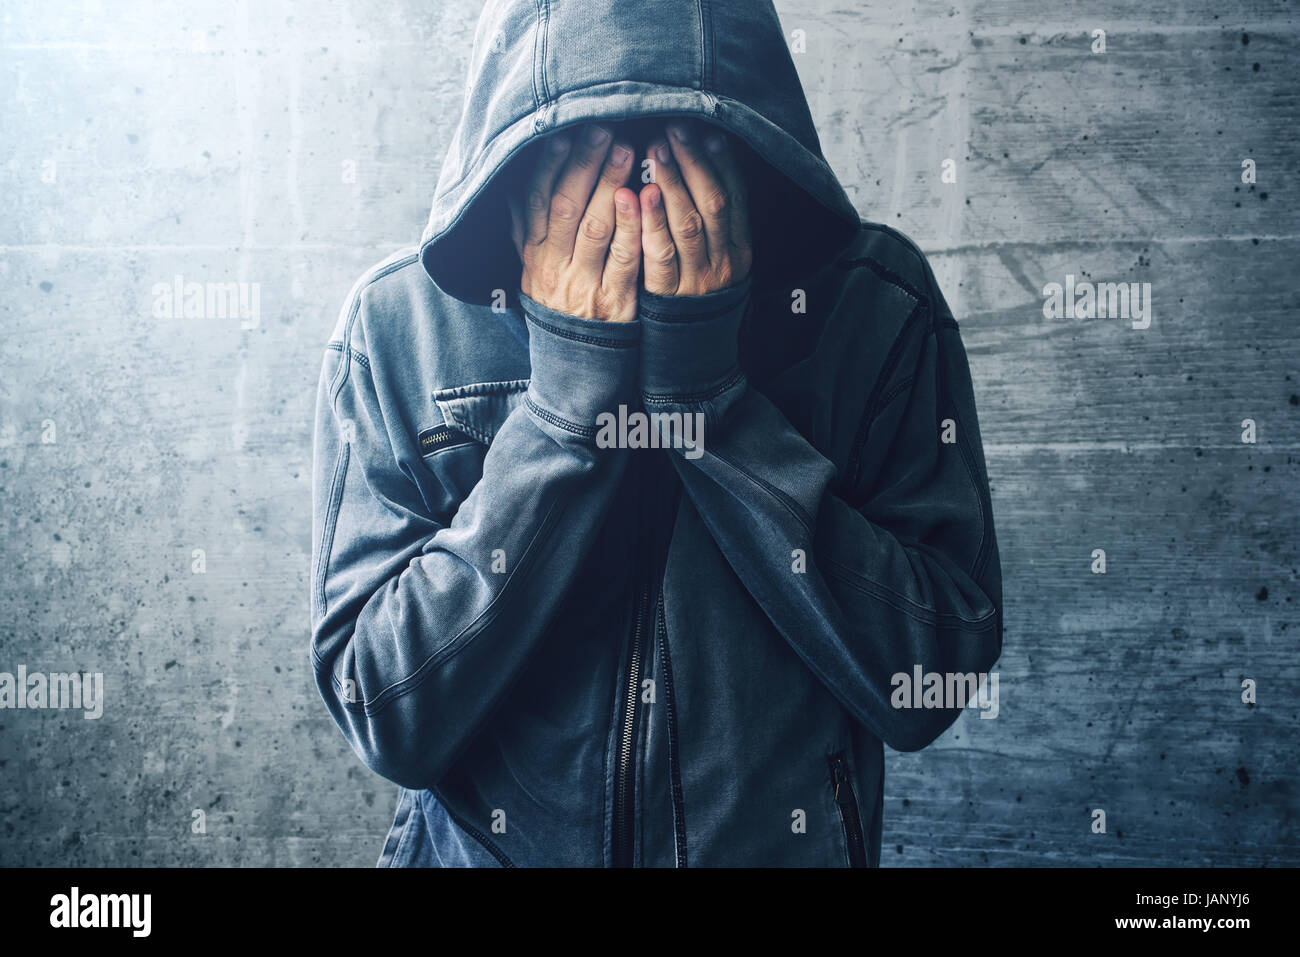 Hopeless drug addict going through addiction crisis, portrait of young adult person with substance dependence after - Stock Image